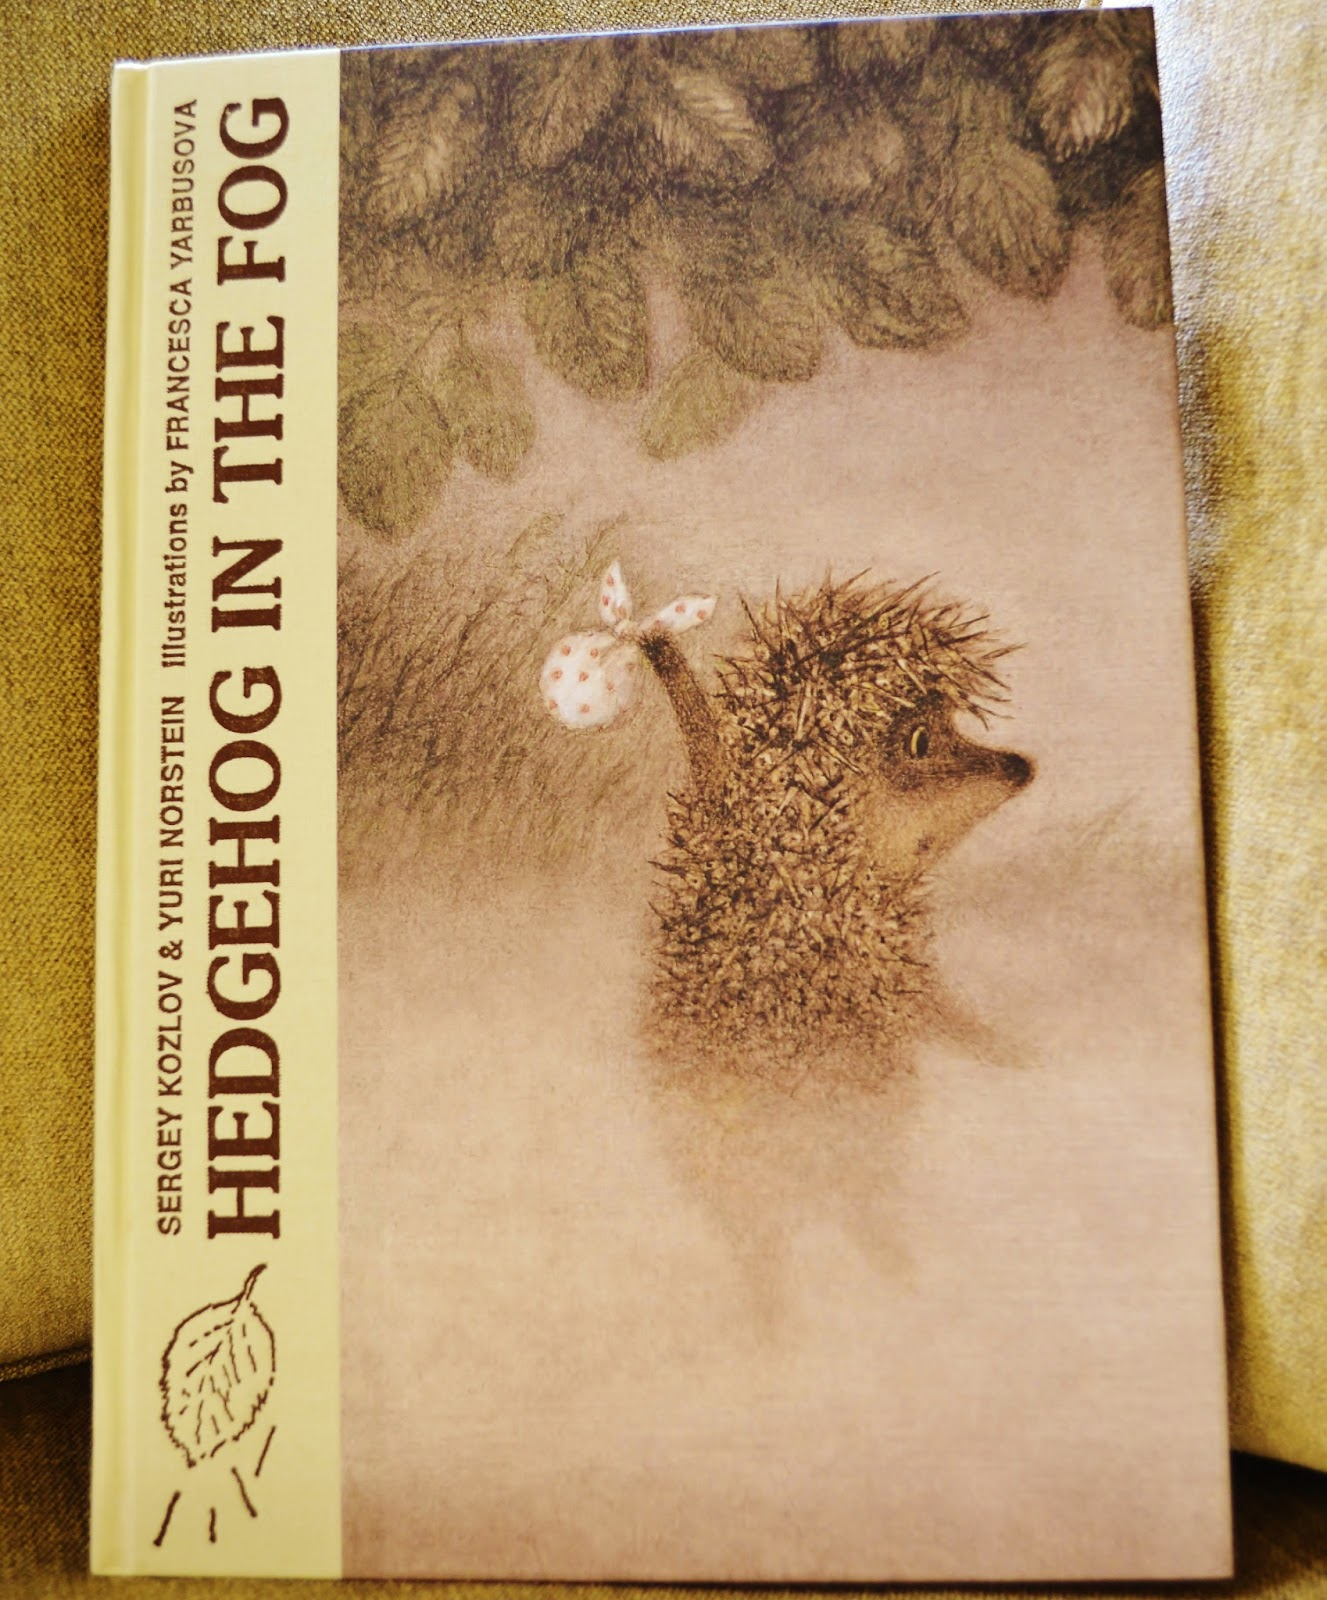 Who is the author of the fairy tale The Hedgehog in the Fog